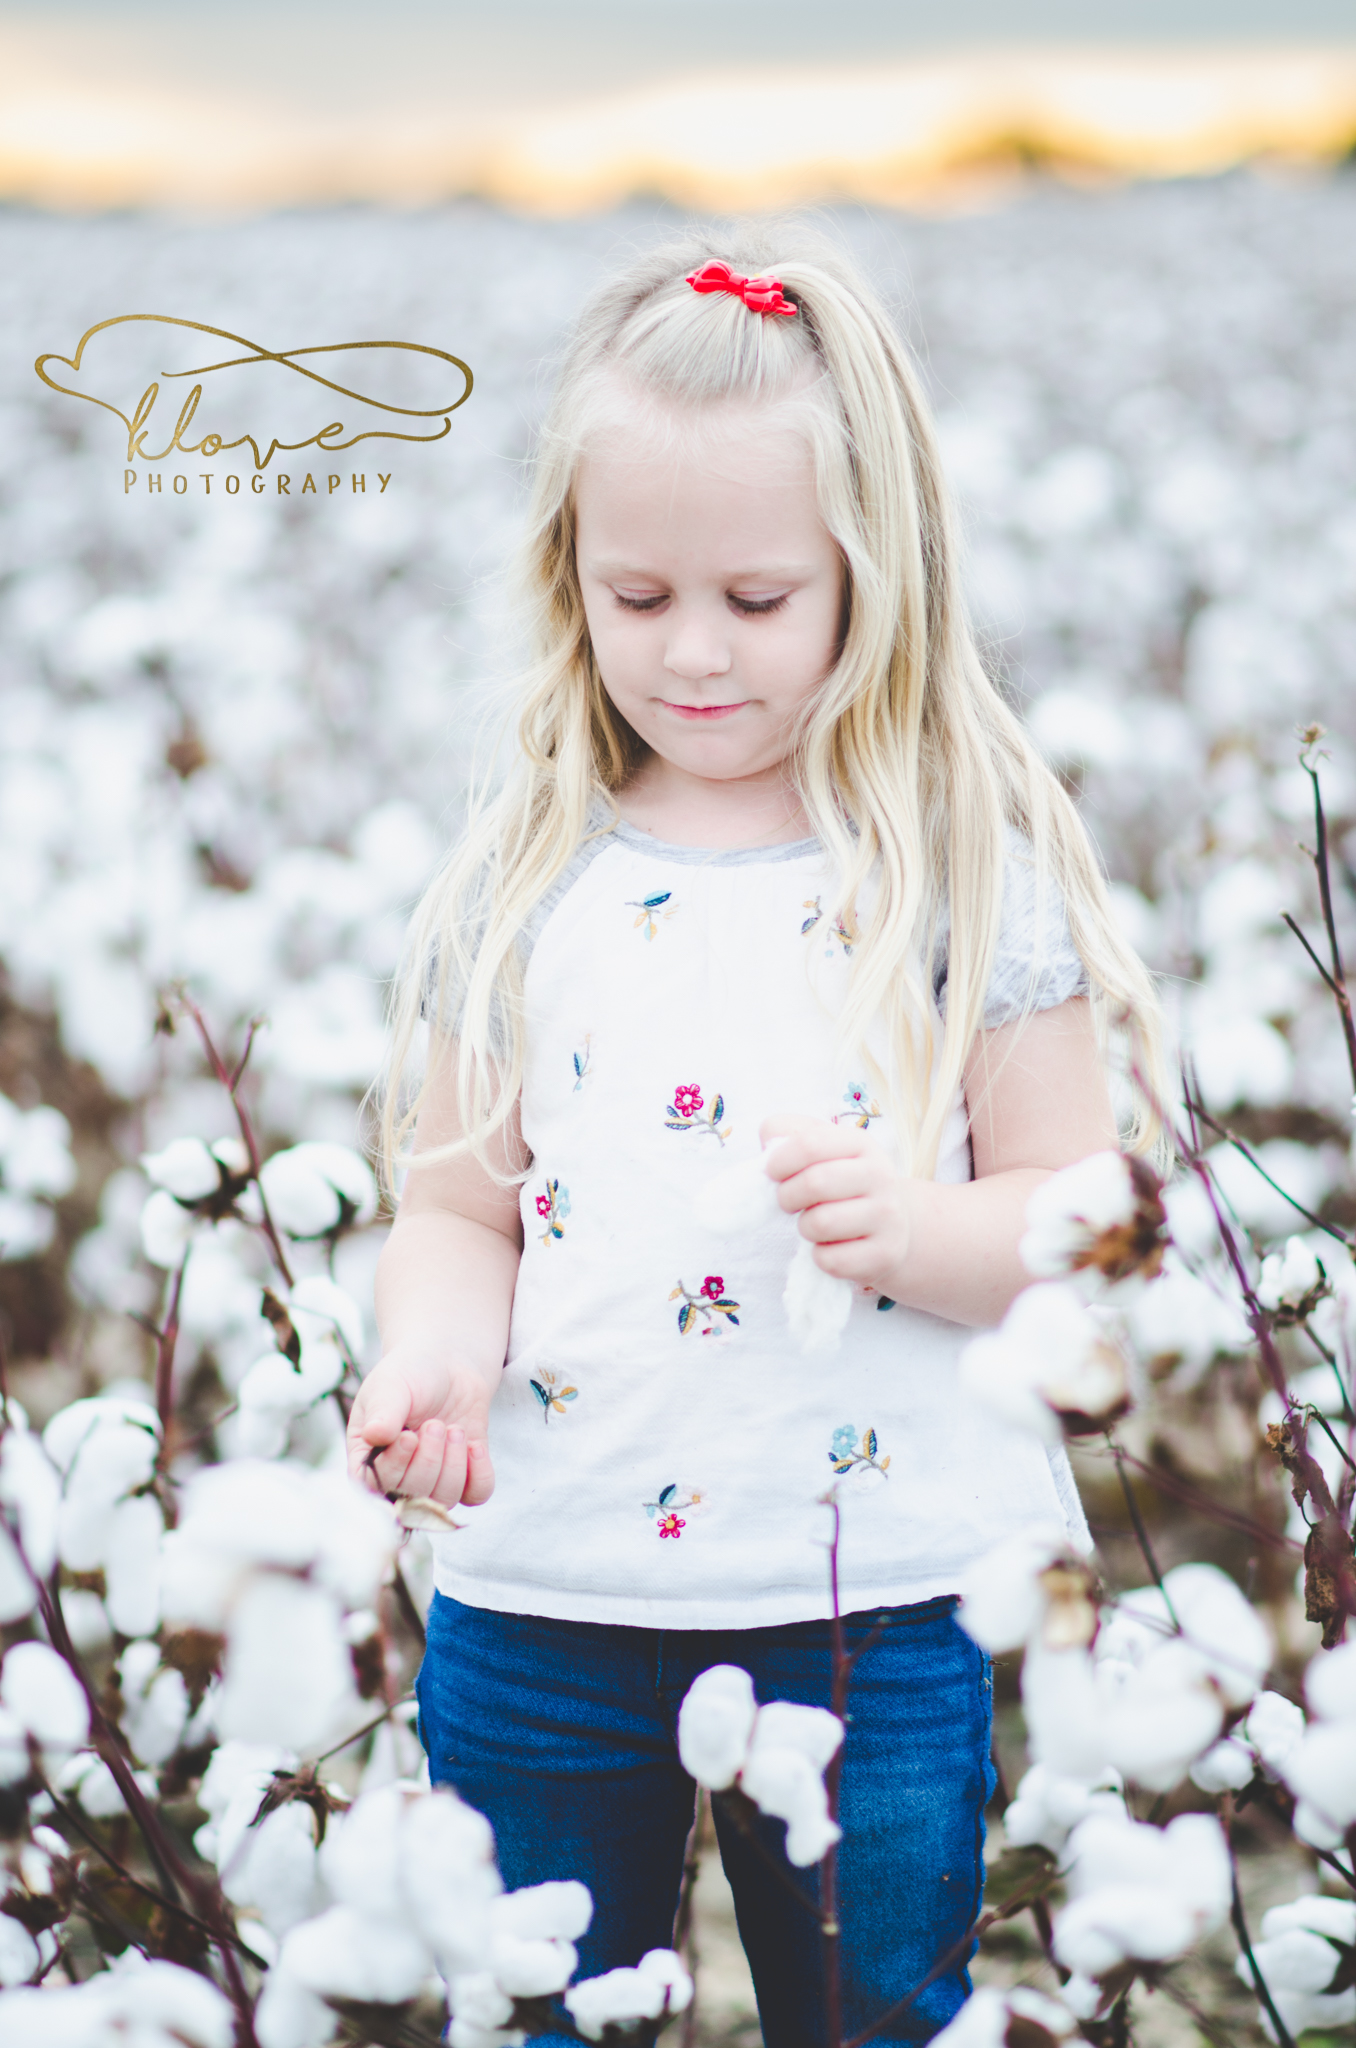 Cotton, - the snow of the South.